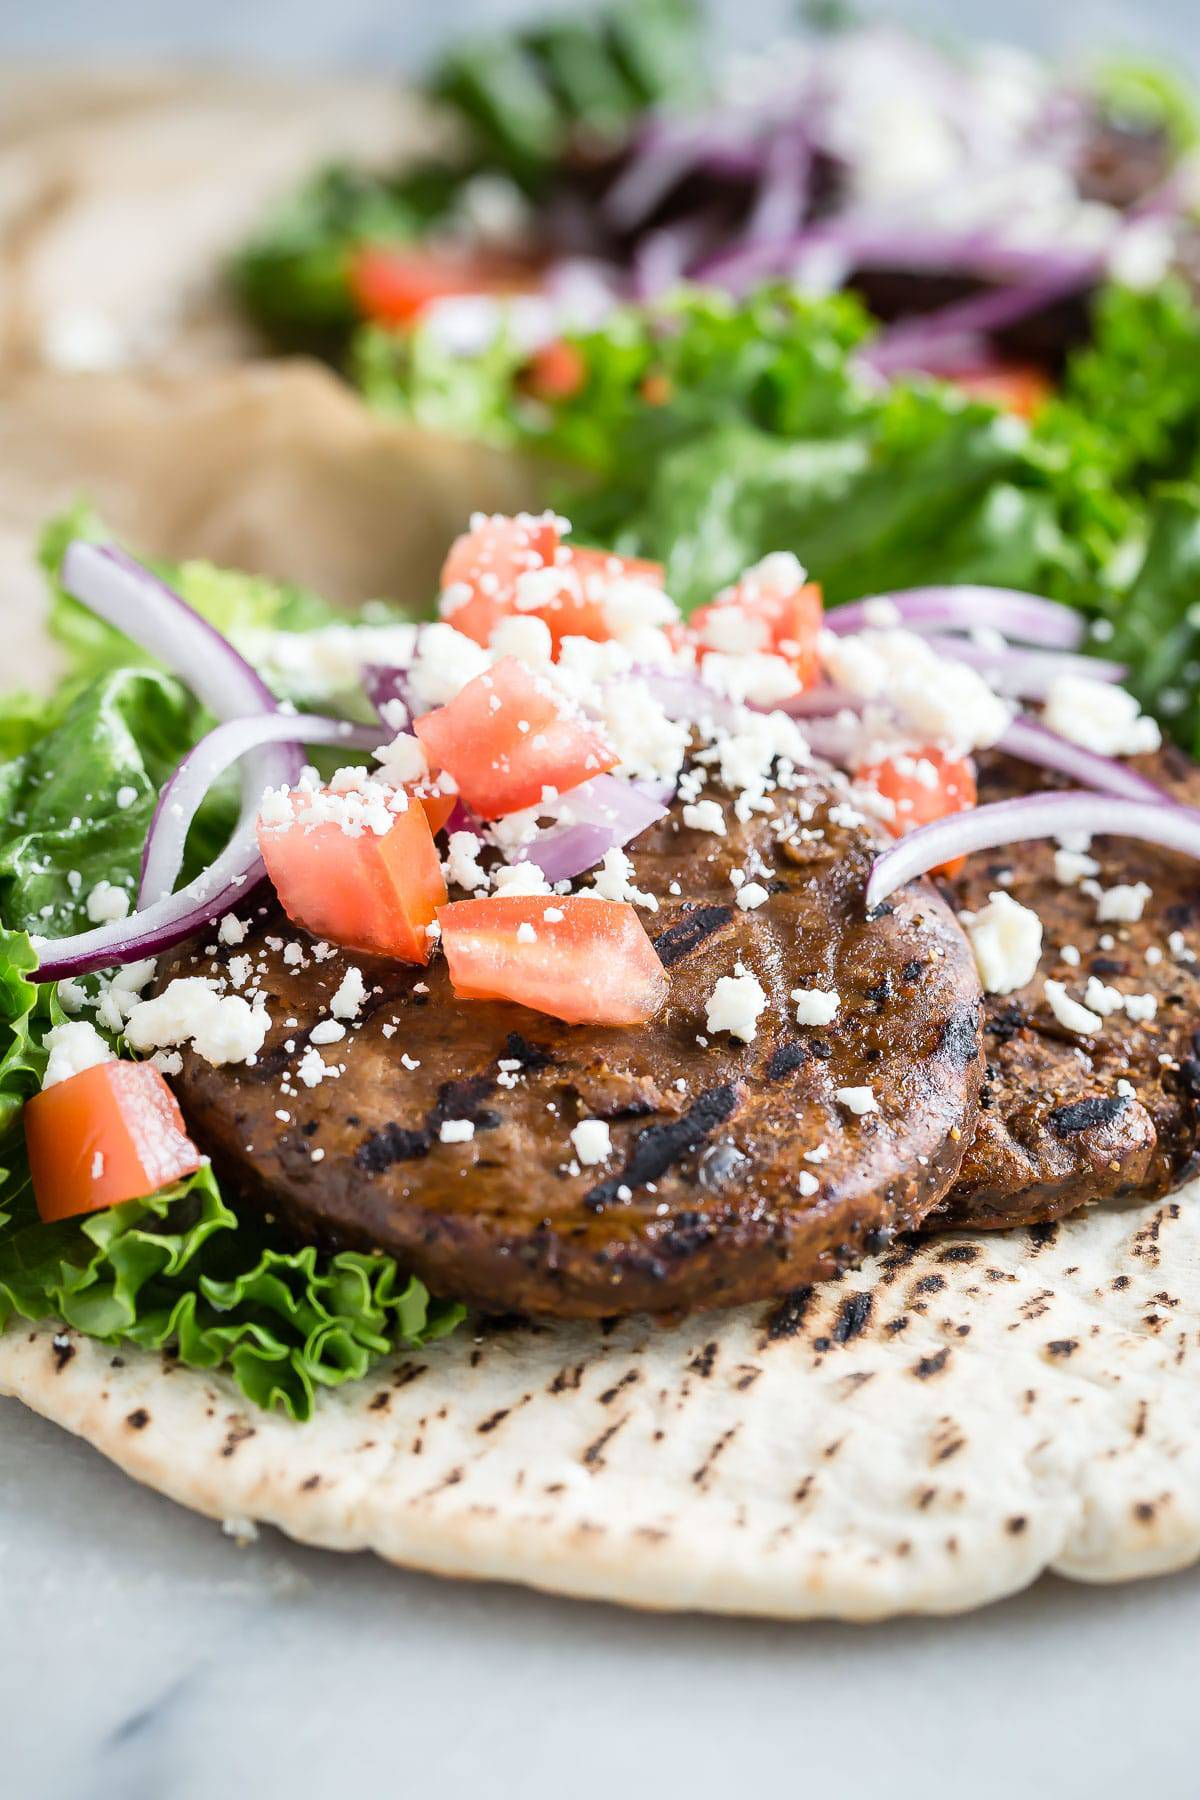 An easy and filling pita sandwich stuffed with two grilled black bean patties, lettuce, tomato, red onion and feta cheese. Skip the bun and go for less calories with pita!